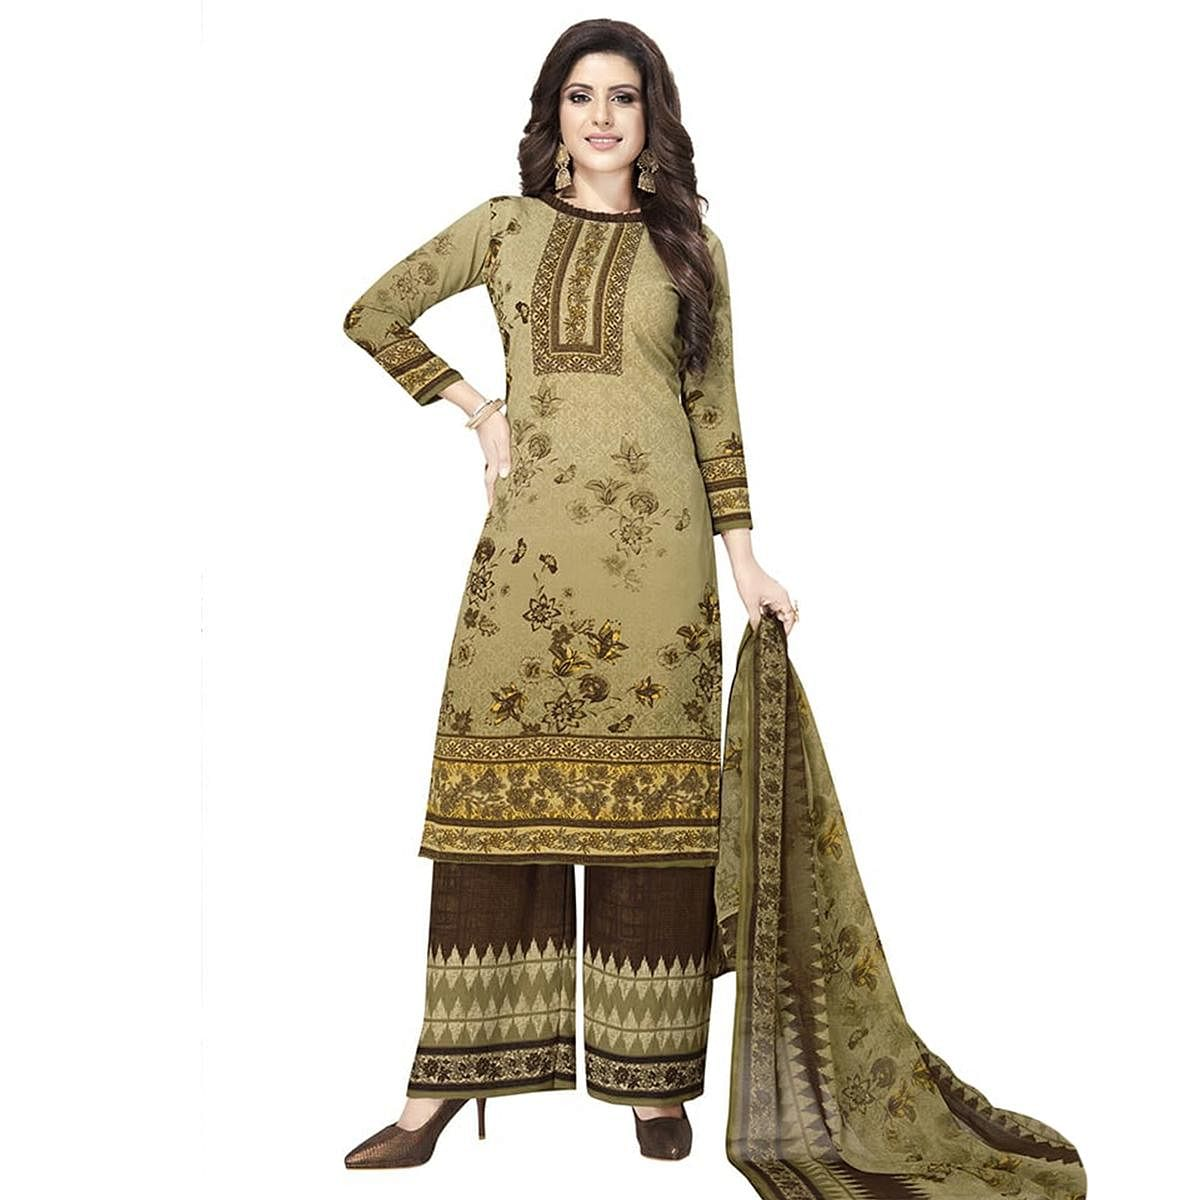 Mesmerising Light Olive Green Colored Casual Printed Crepe Dress Material